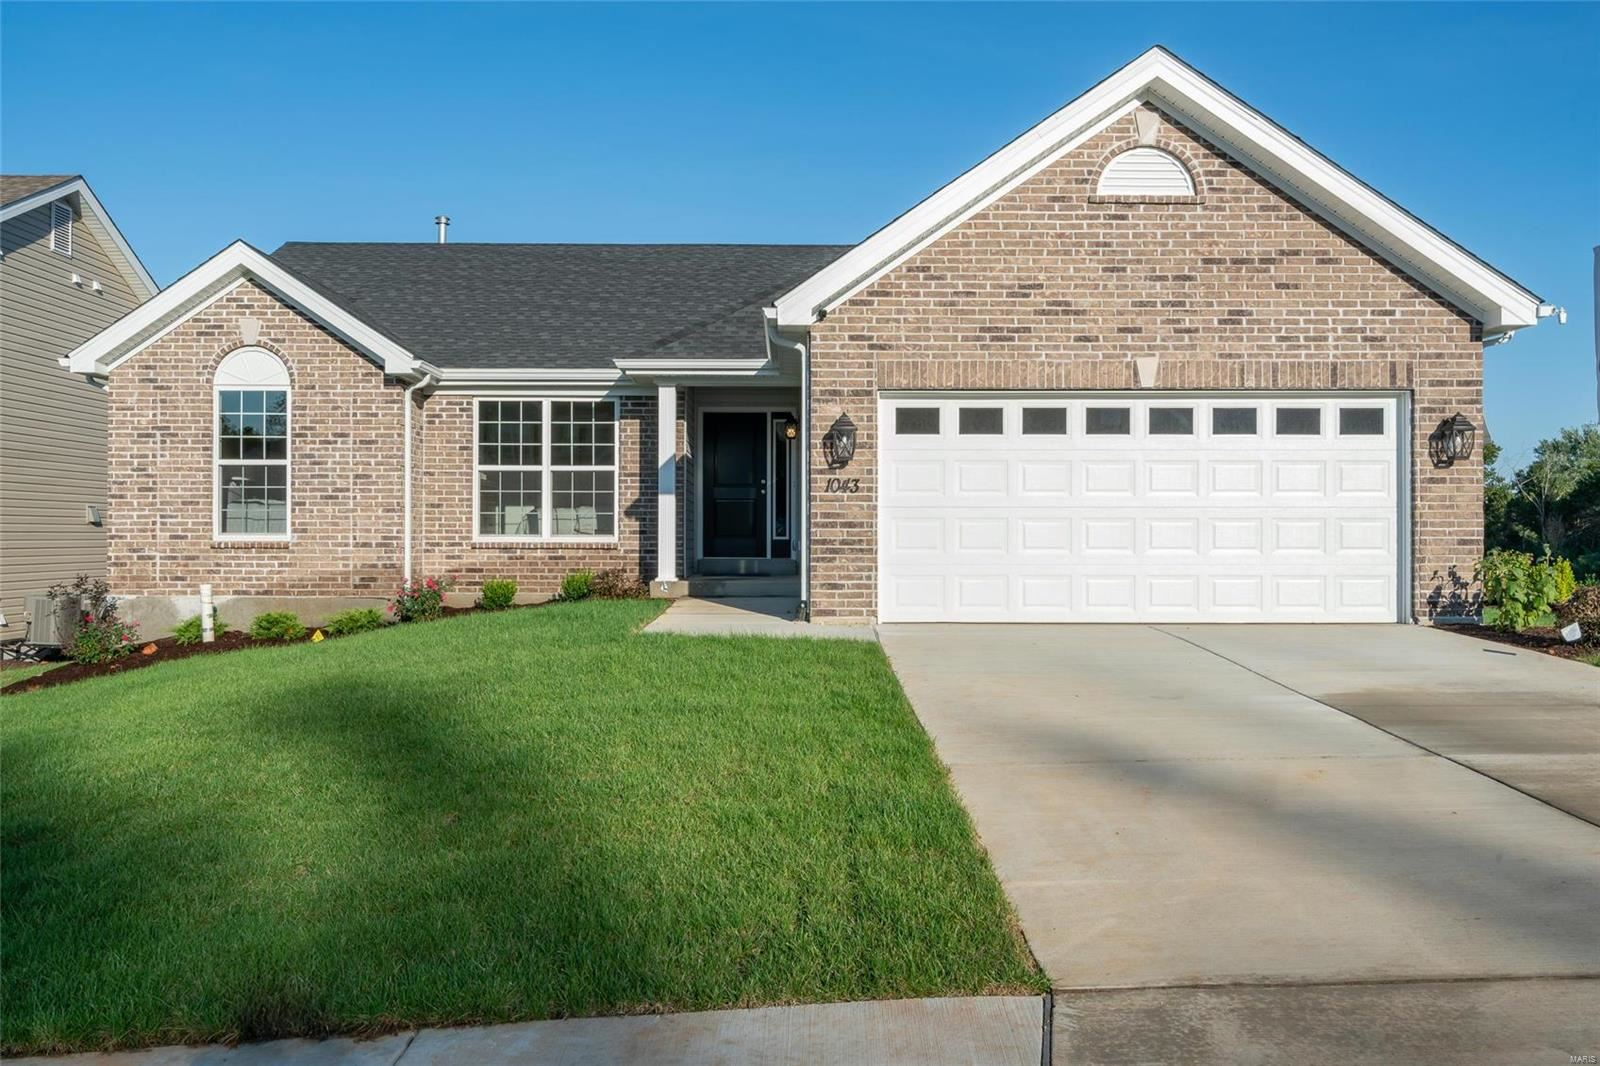 1 Hickory at Shadow Point, Oakville, MO 63129 - MLS#: 21072325